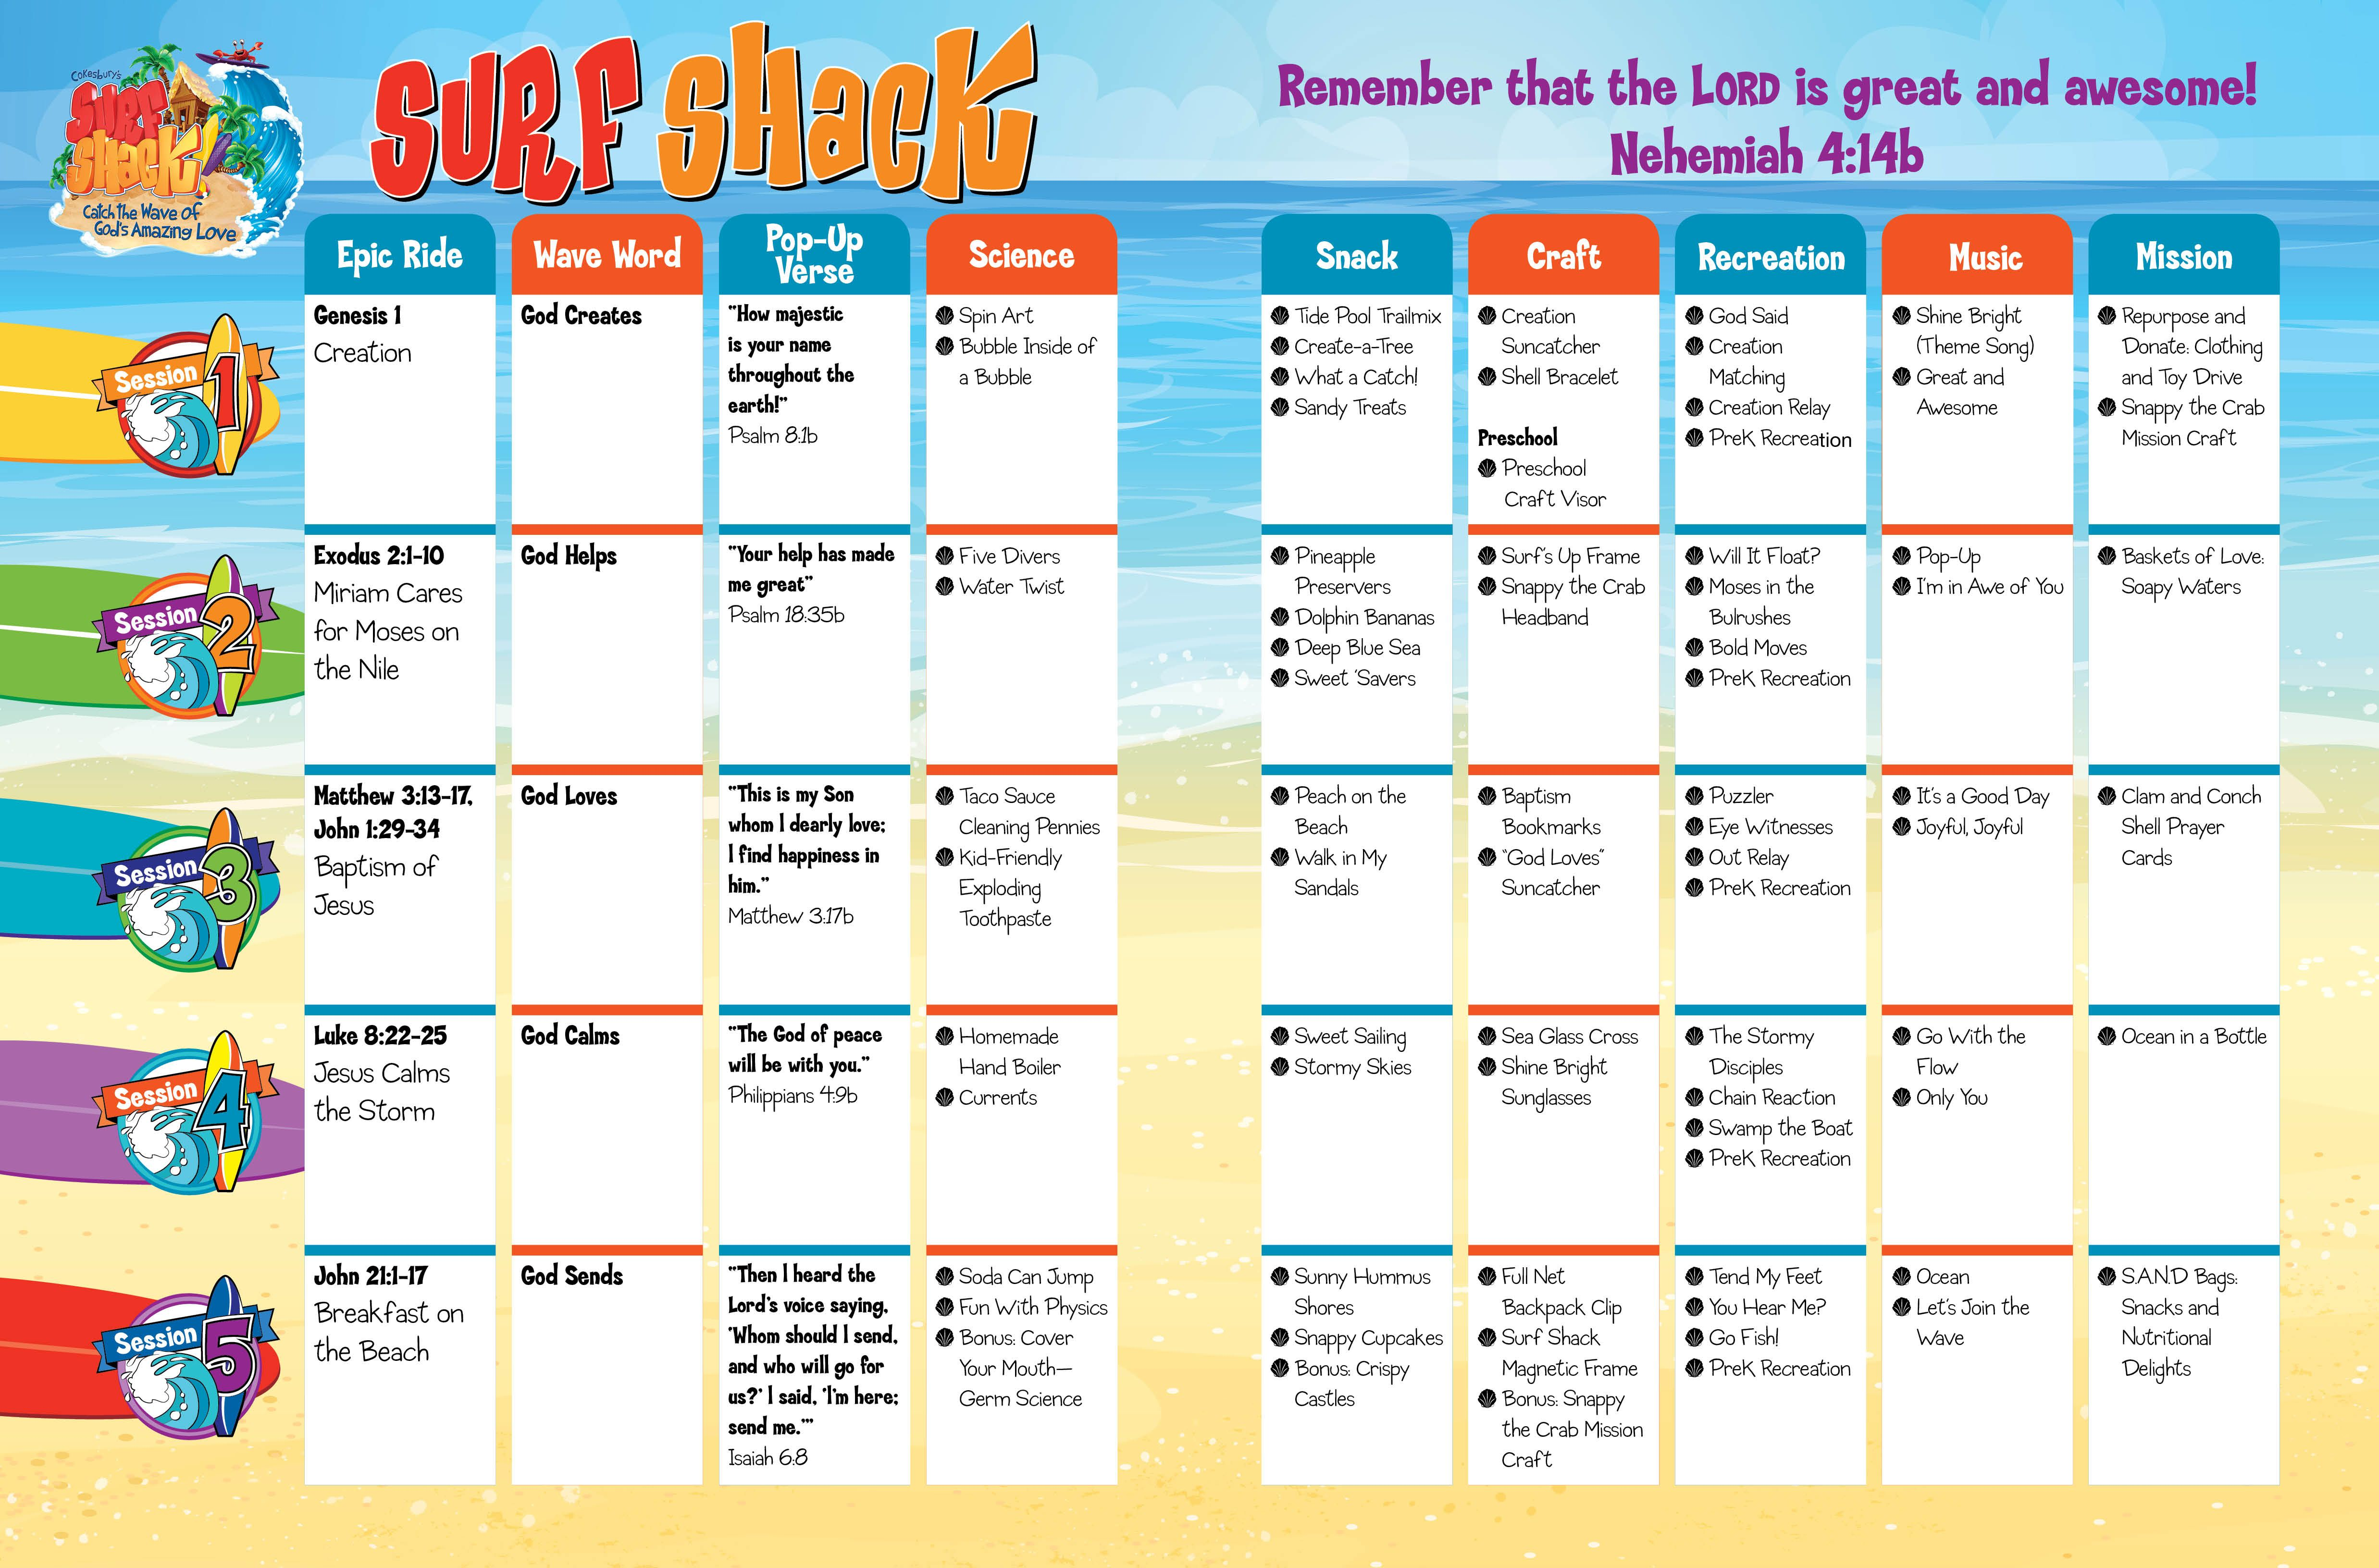 Http kesburyvbs downloads surf shack also pin by kate clatterbuck on vbs surfing rh pinterest